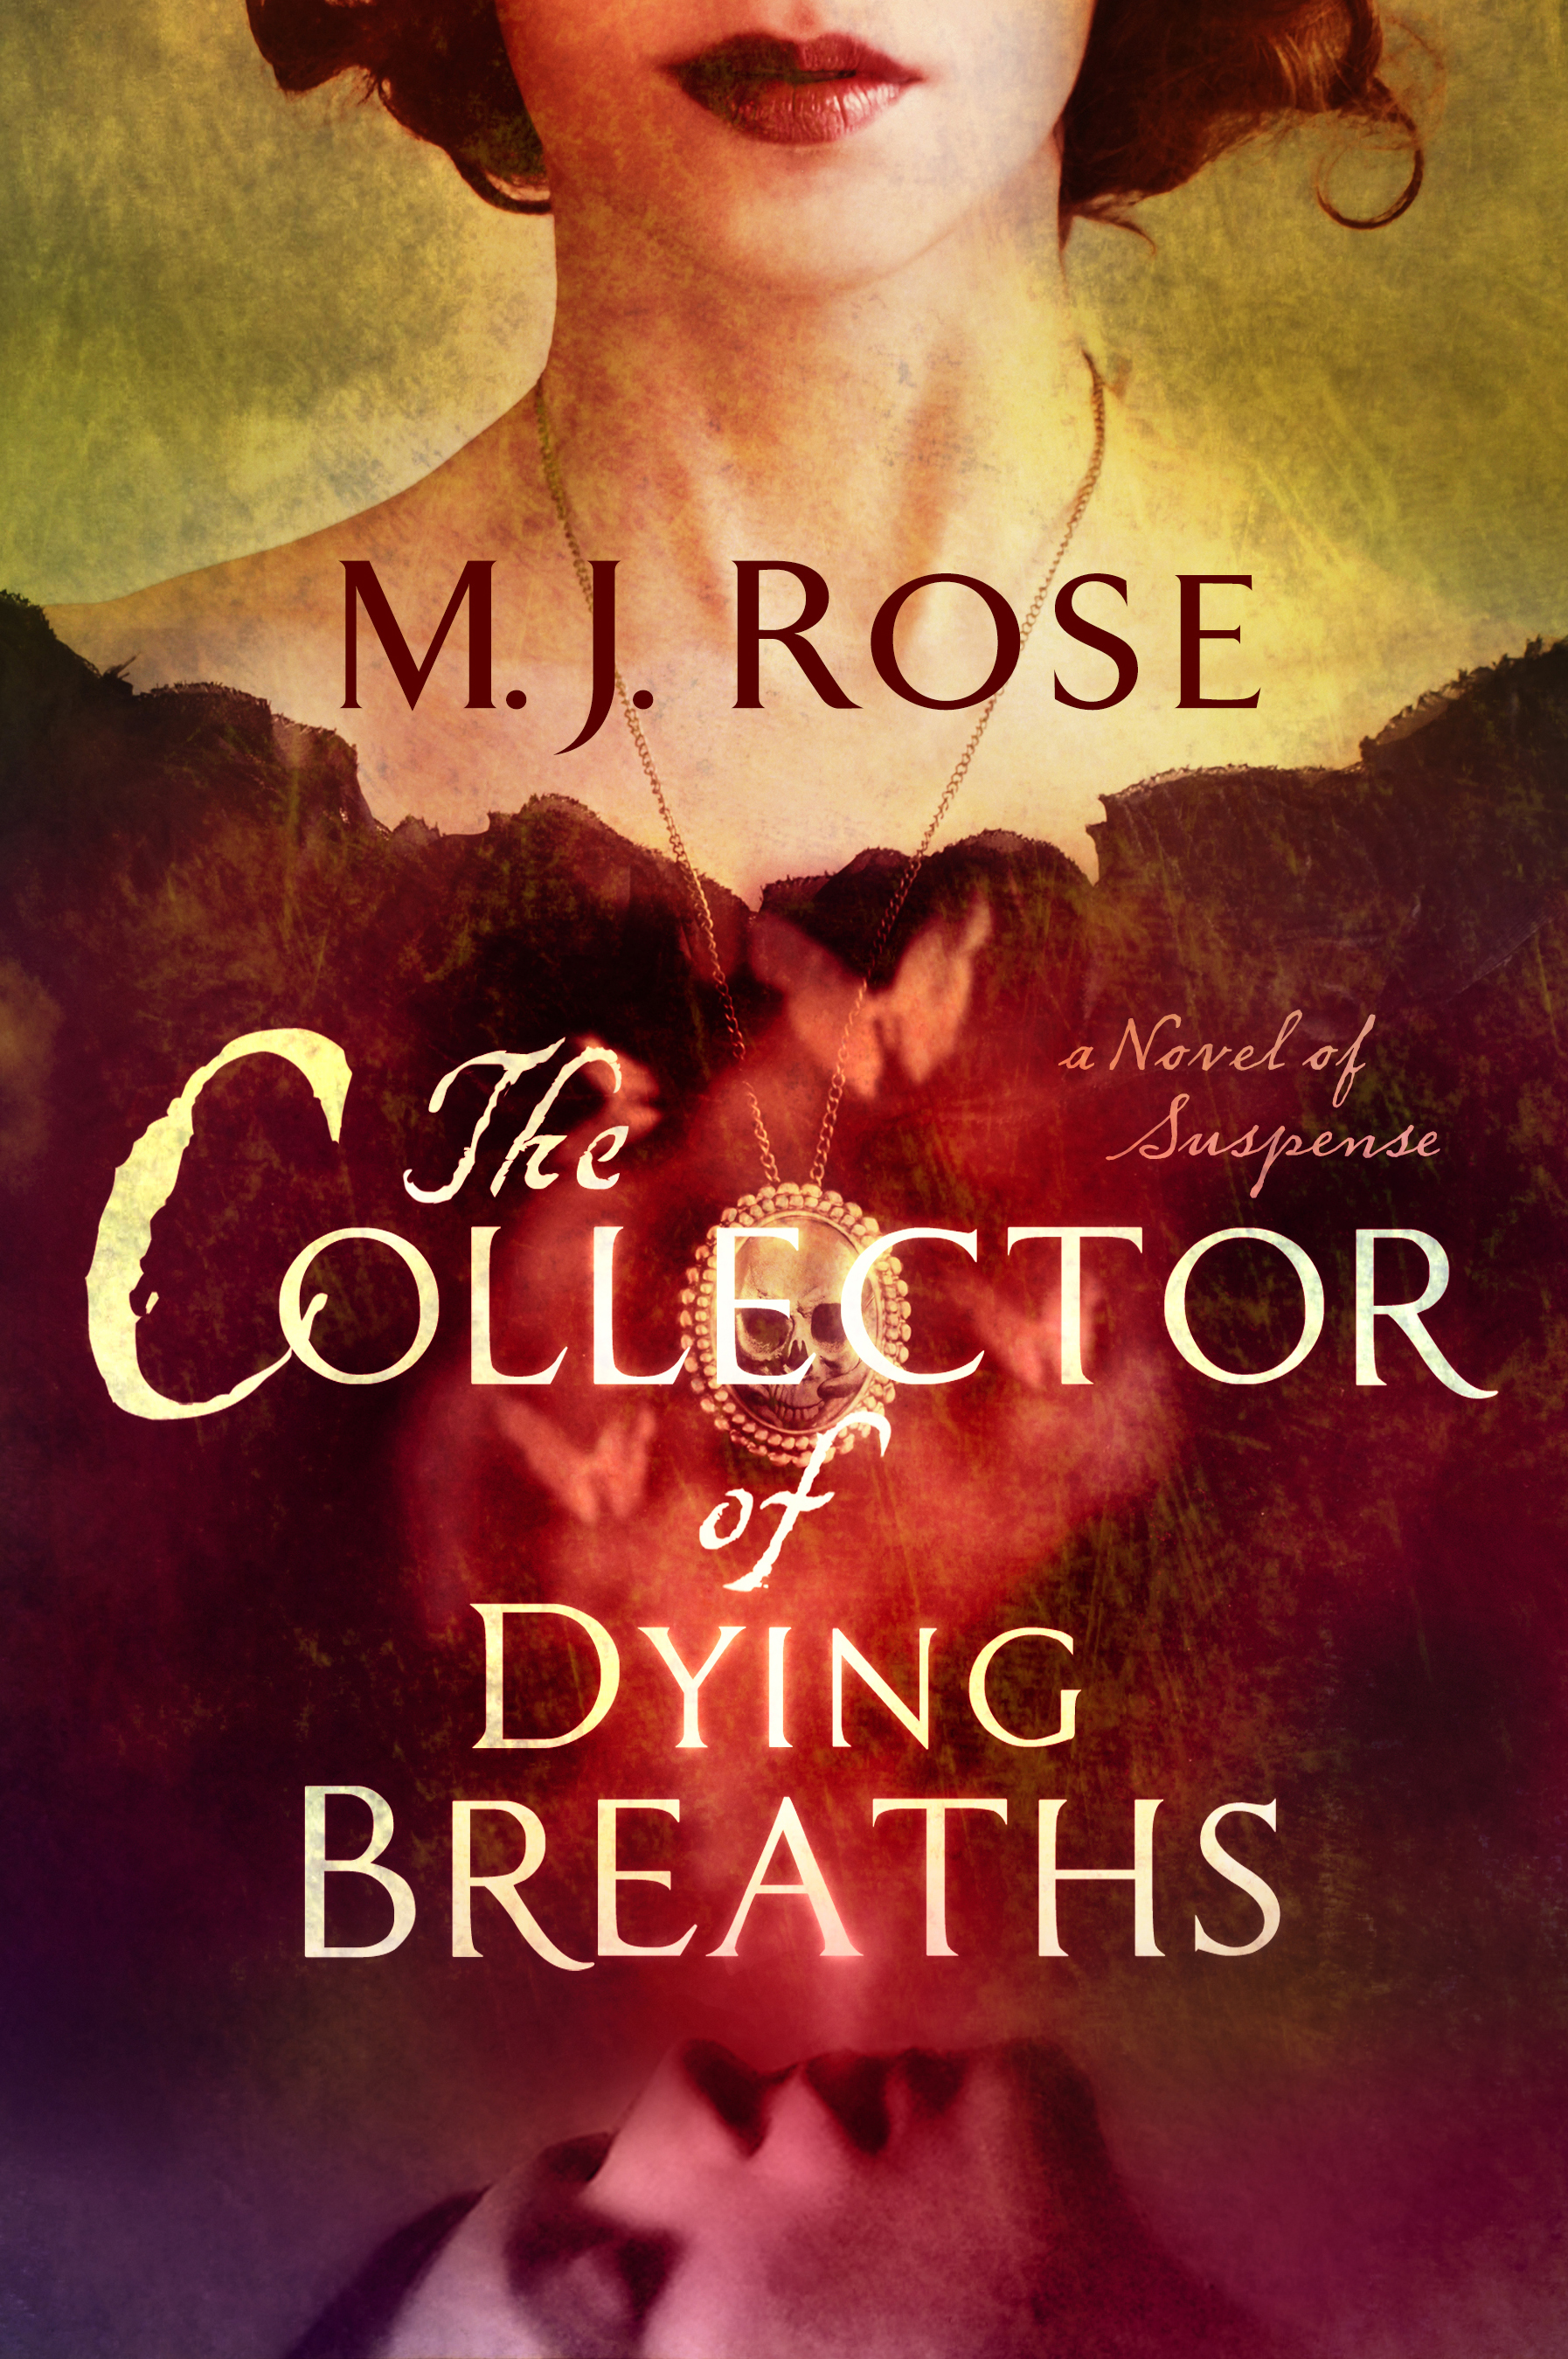 Collector-of-dying-breaths-9781451621532_hr